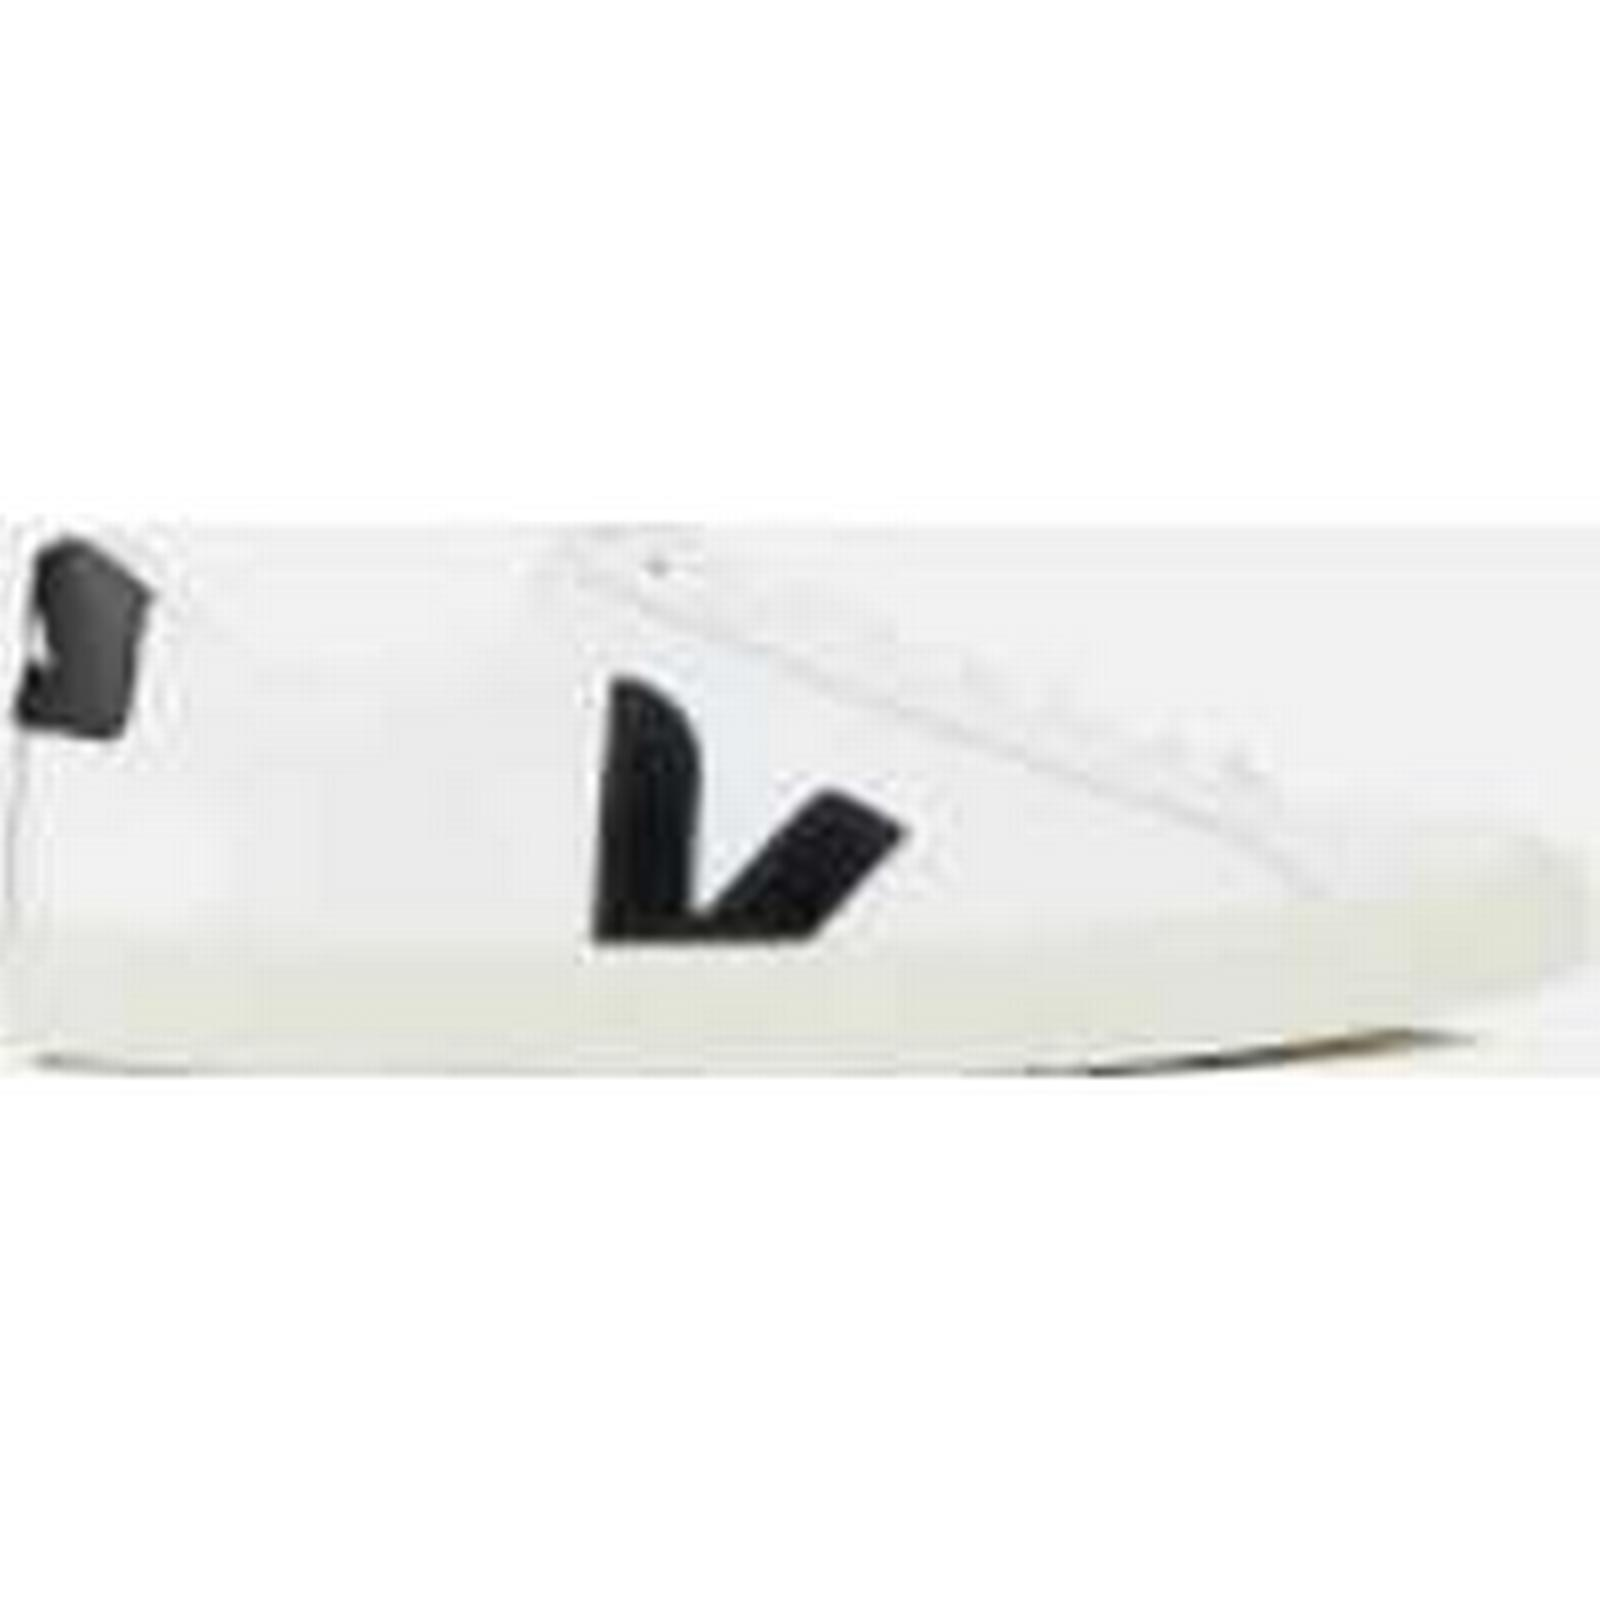 Veja Men's Esplar Leather White/Black Low Trainers - Extra White/Black Leather - EU 44/UK 10 - White 16180a